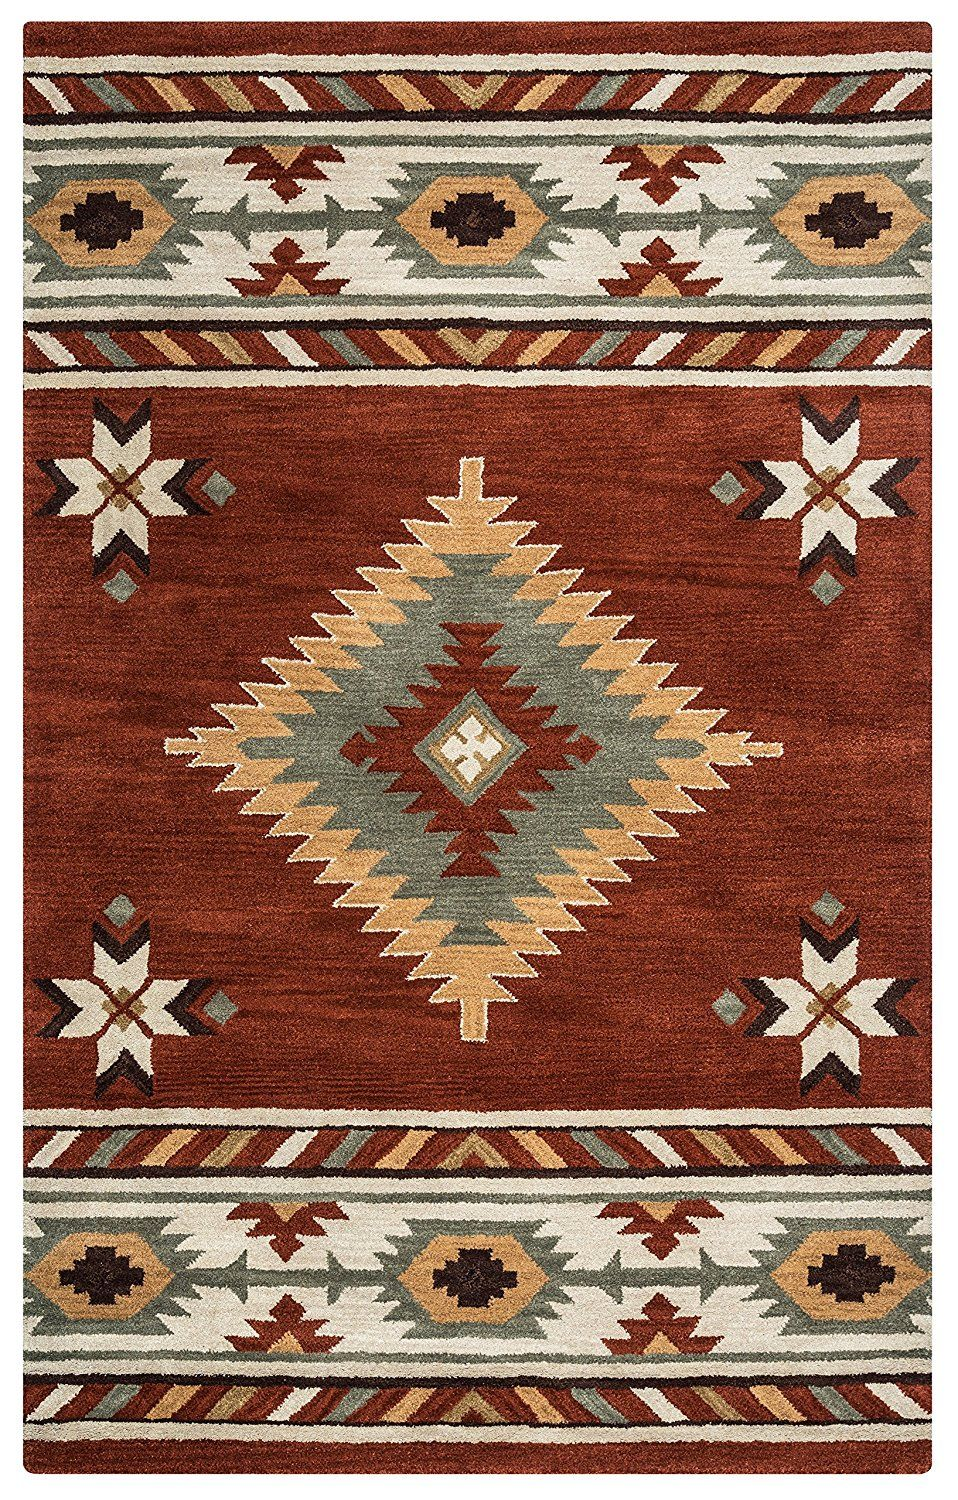 Image Result For Southwestern Rug With Images Wool Area Rugs